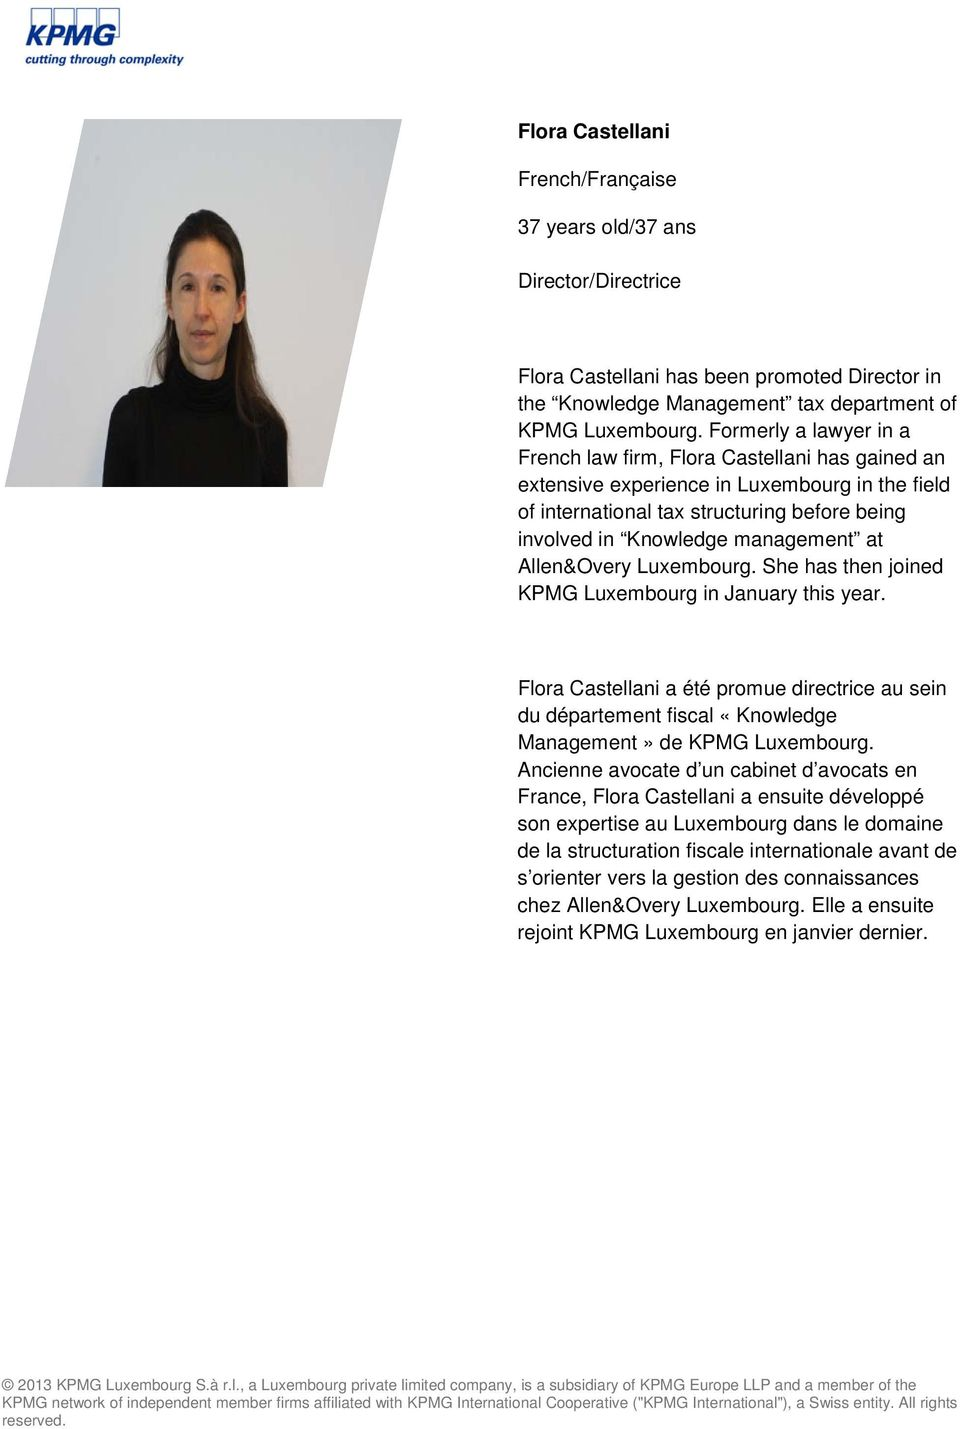 at Allen&Overy Luxembourg. She has then joined KPMG Luxembourg in January this year. Flora Castellani a été promue directrice au sein du département fiscal «Knowledge Management» de KPMG Luxembourg.